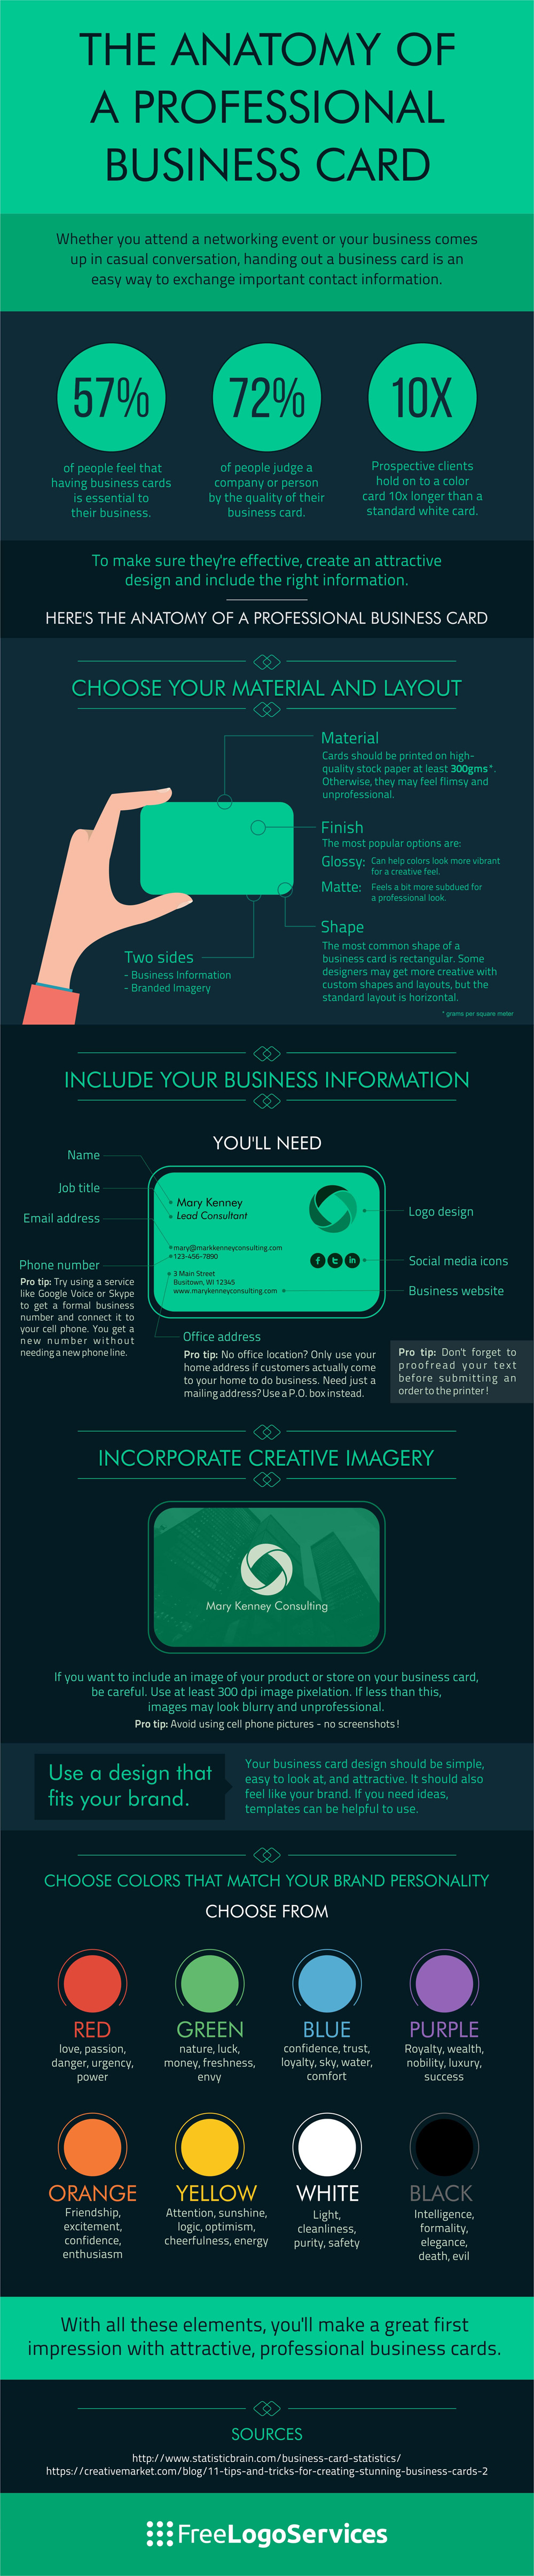 The Anatomy of a Professional Business Card [Infographic]